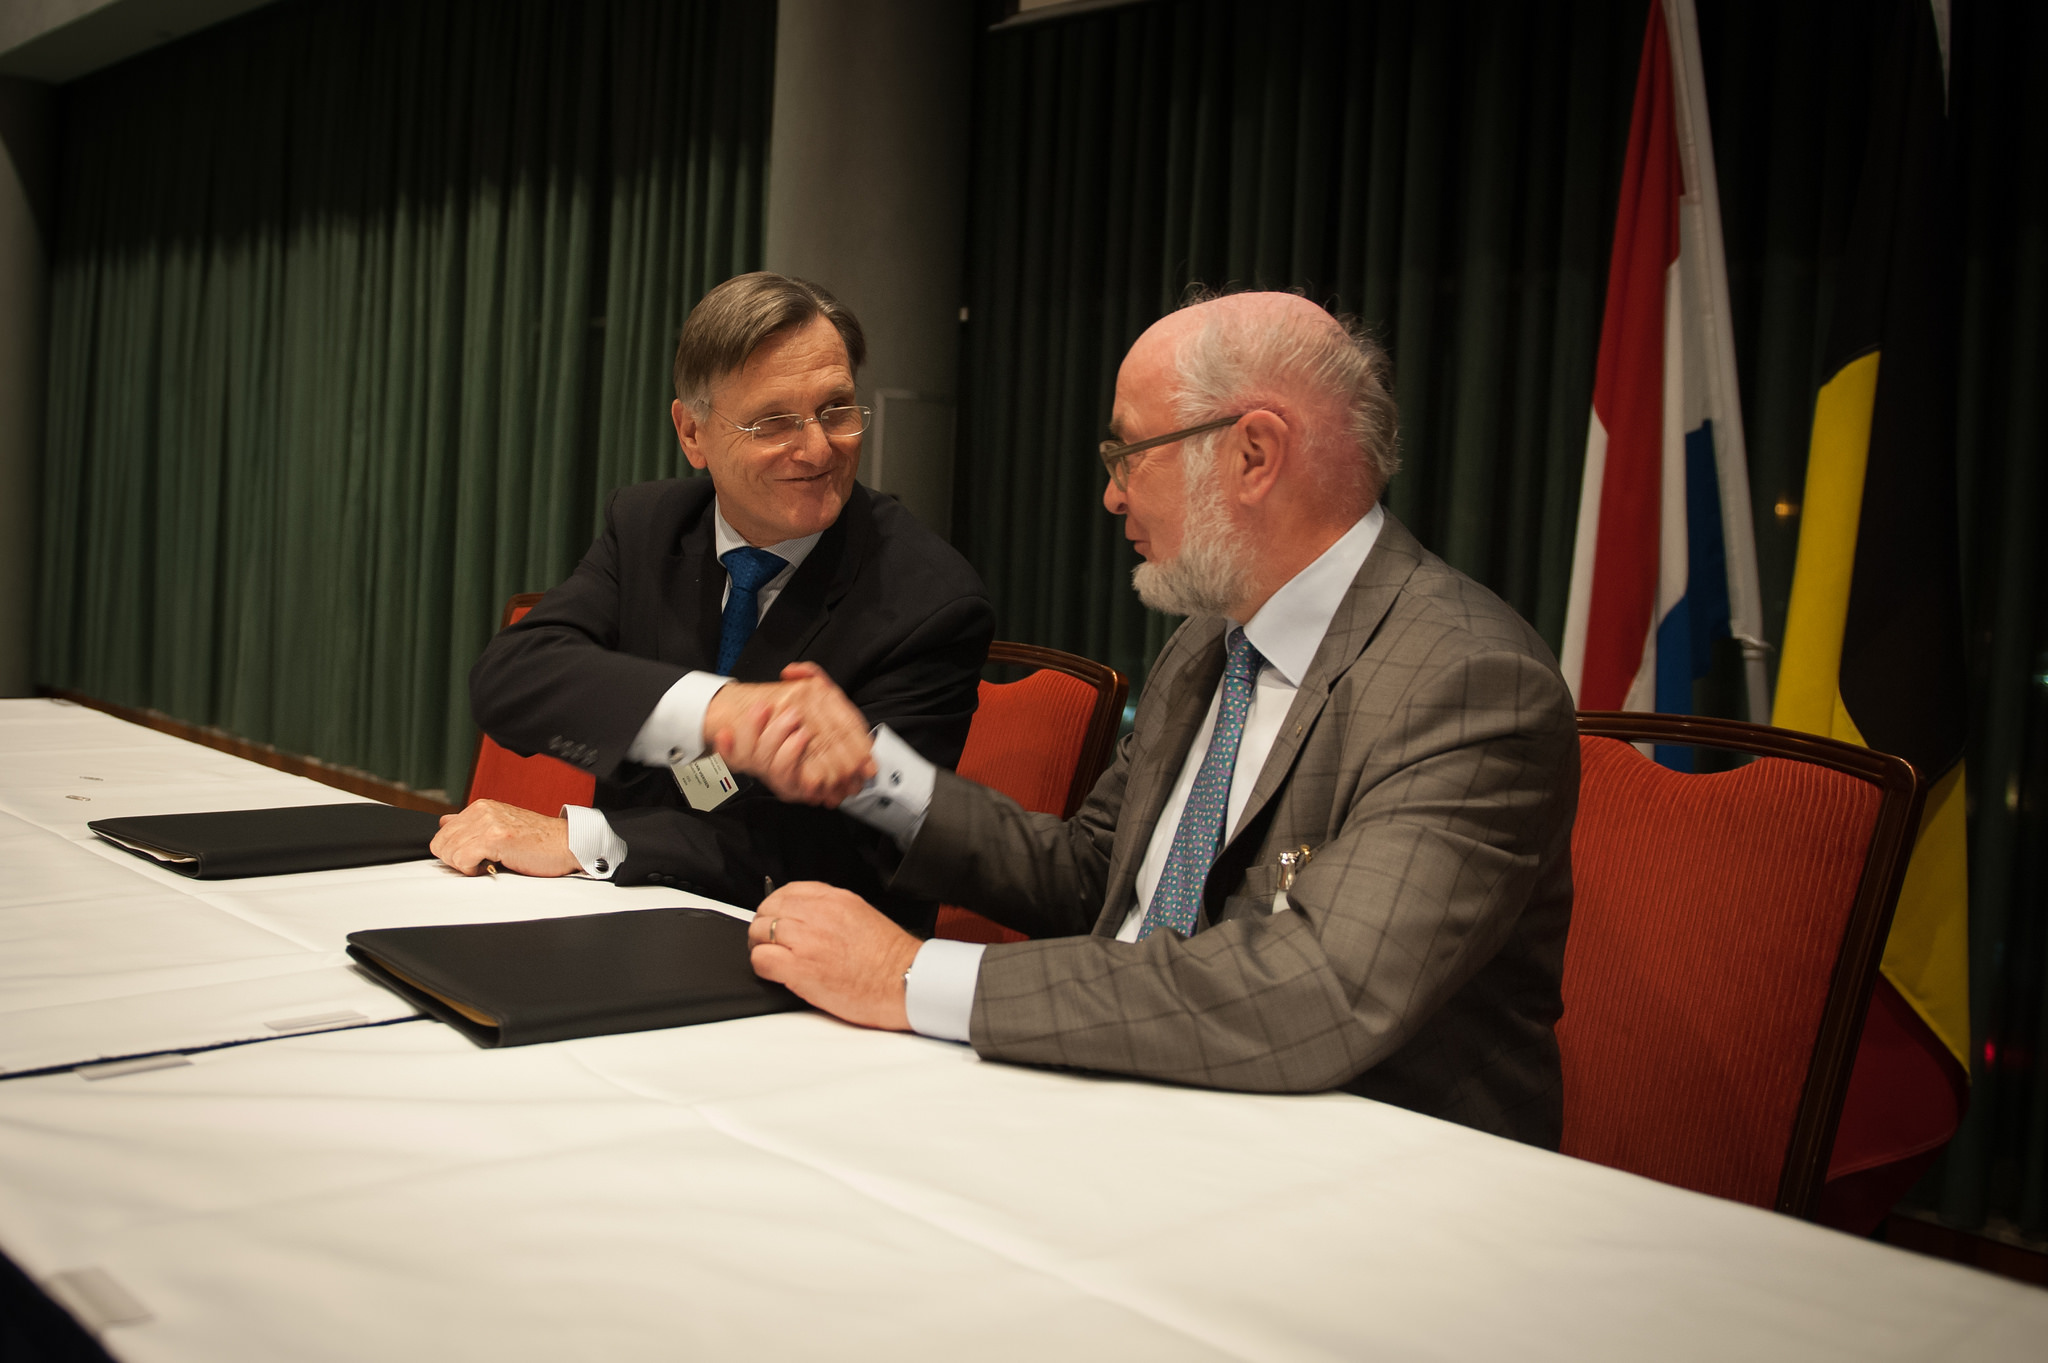 WIM VAN VIERSSEN, STATUTORY DIRECTOR OF KWH WATER B.V., AND BOUDEWIJN VAN DE STEENE, DIRECTOR-GENERAL OF DE WATERGROEP, FOLLOWING THE SIGNING OF DE WATERGROEP'S SHAREHOLDERSHIP IN KWH.